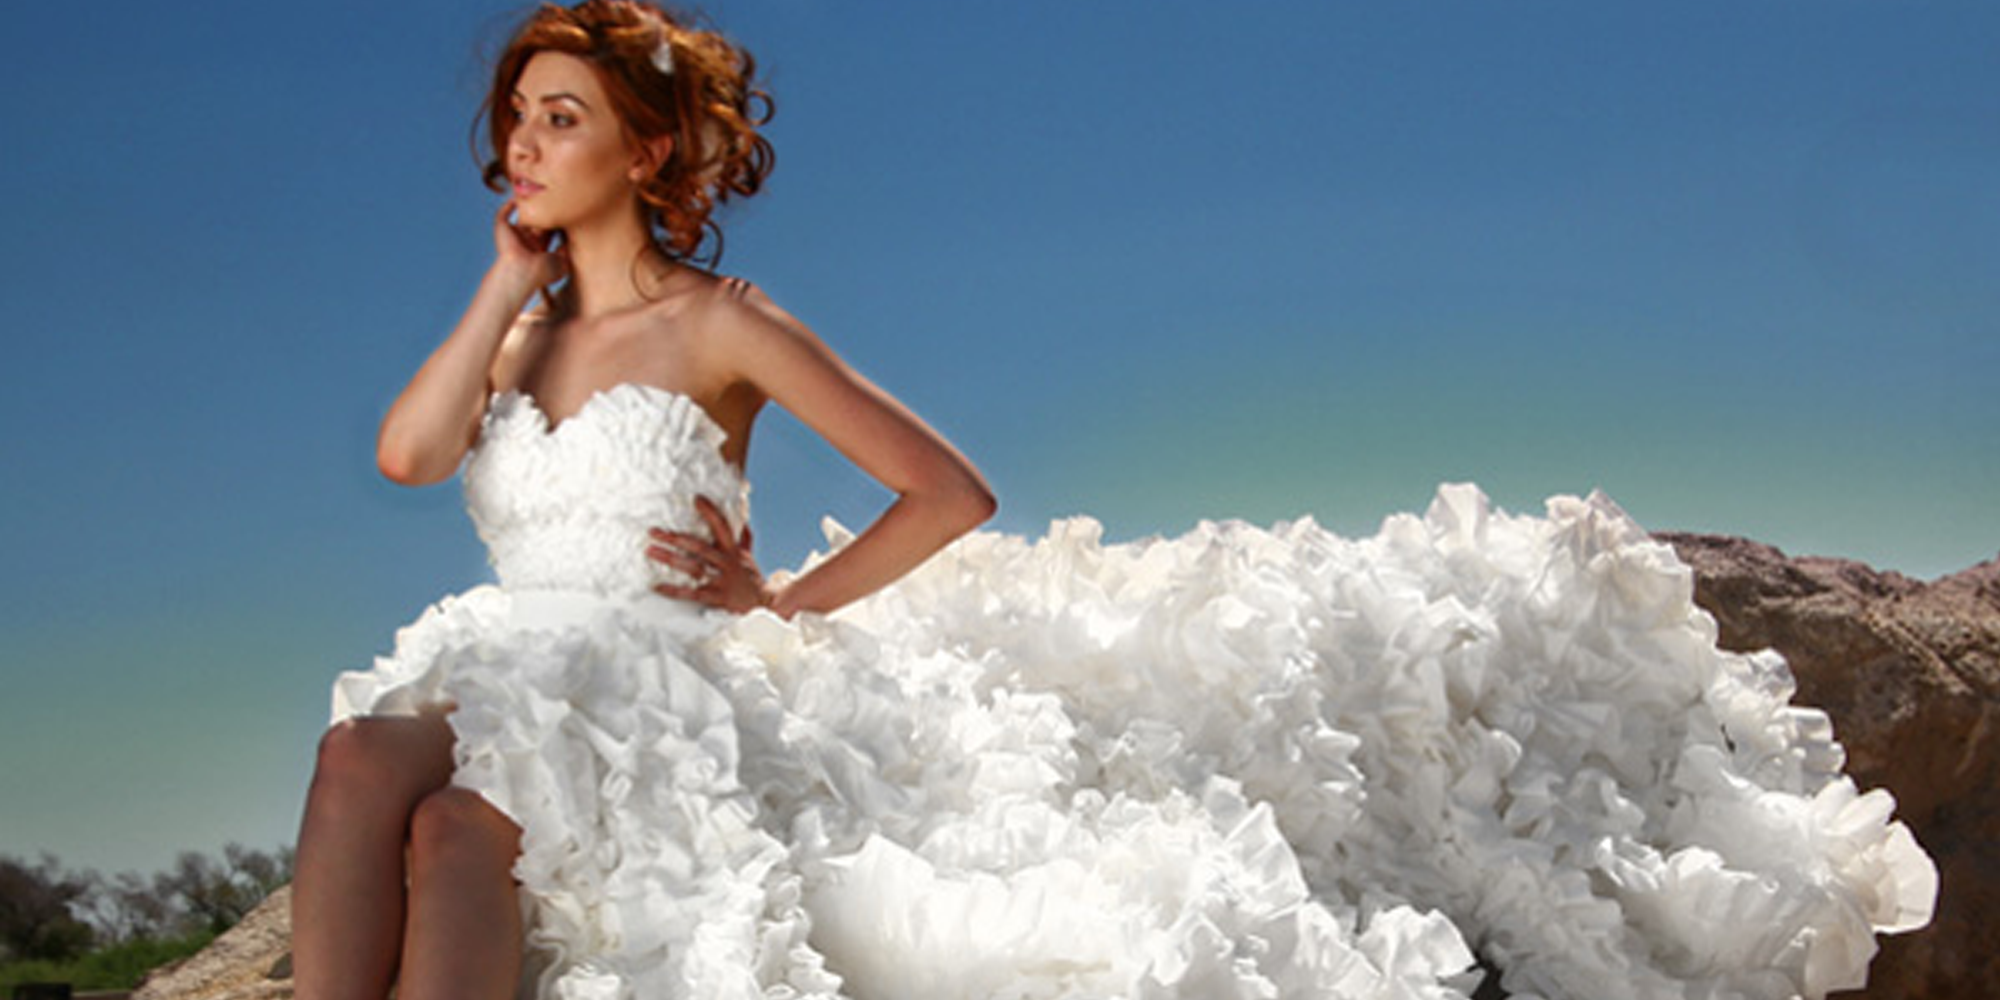 20+ Wedding Dresses That Should Have Never Existed – Manplate